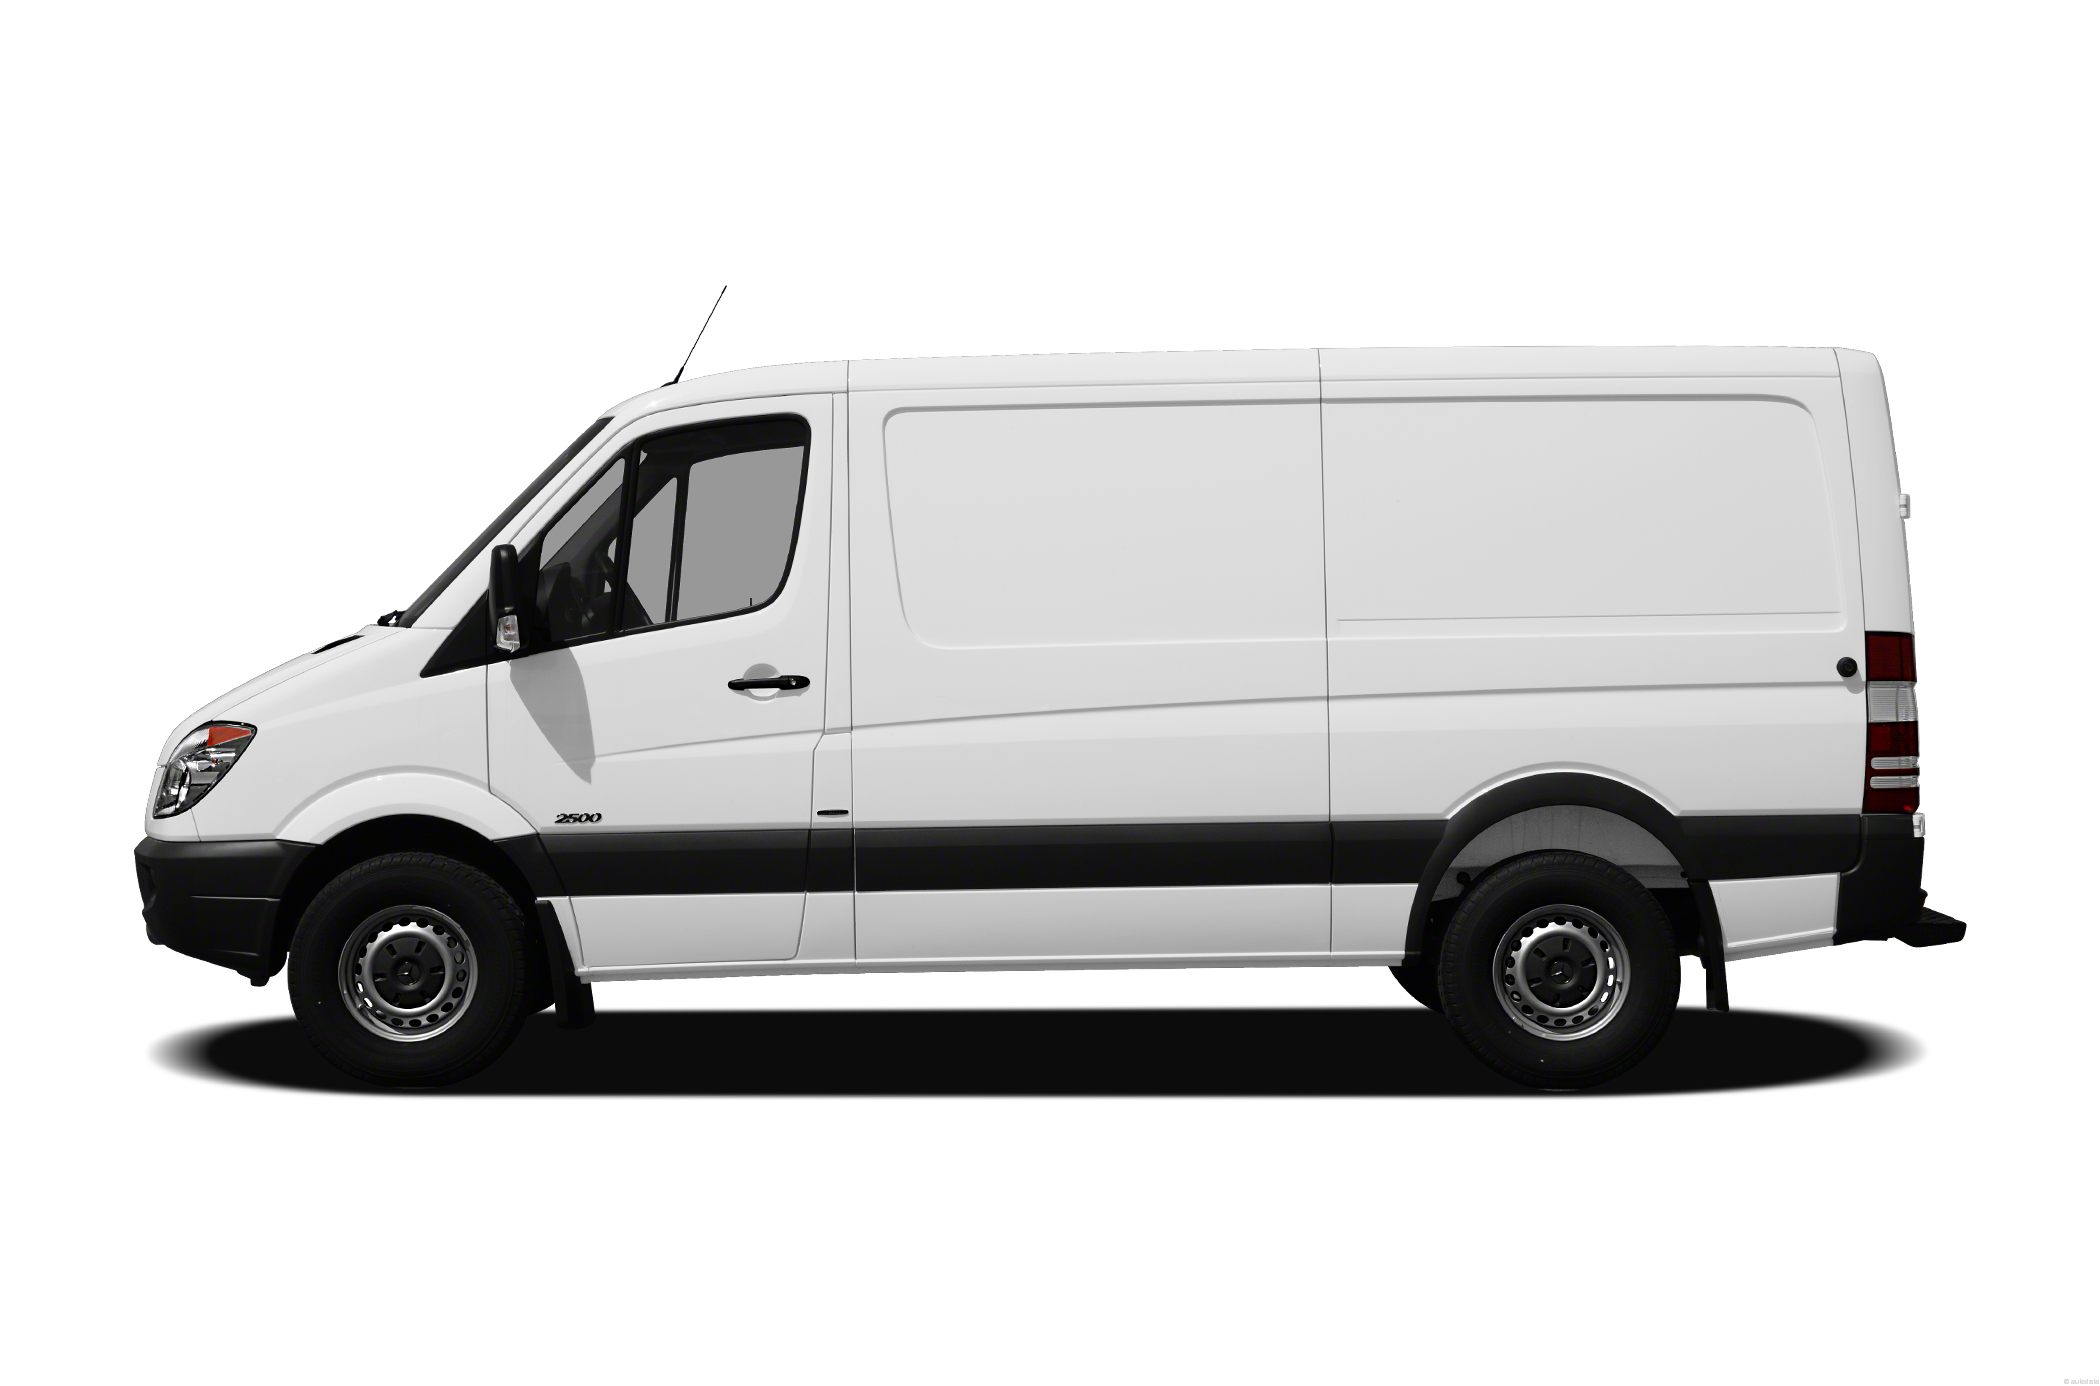 White Van Png (107+ images in Collection) Page 2.